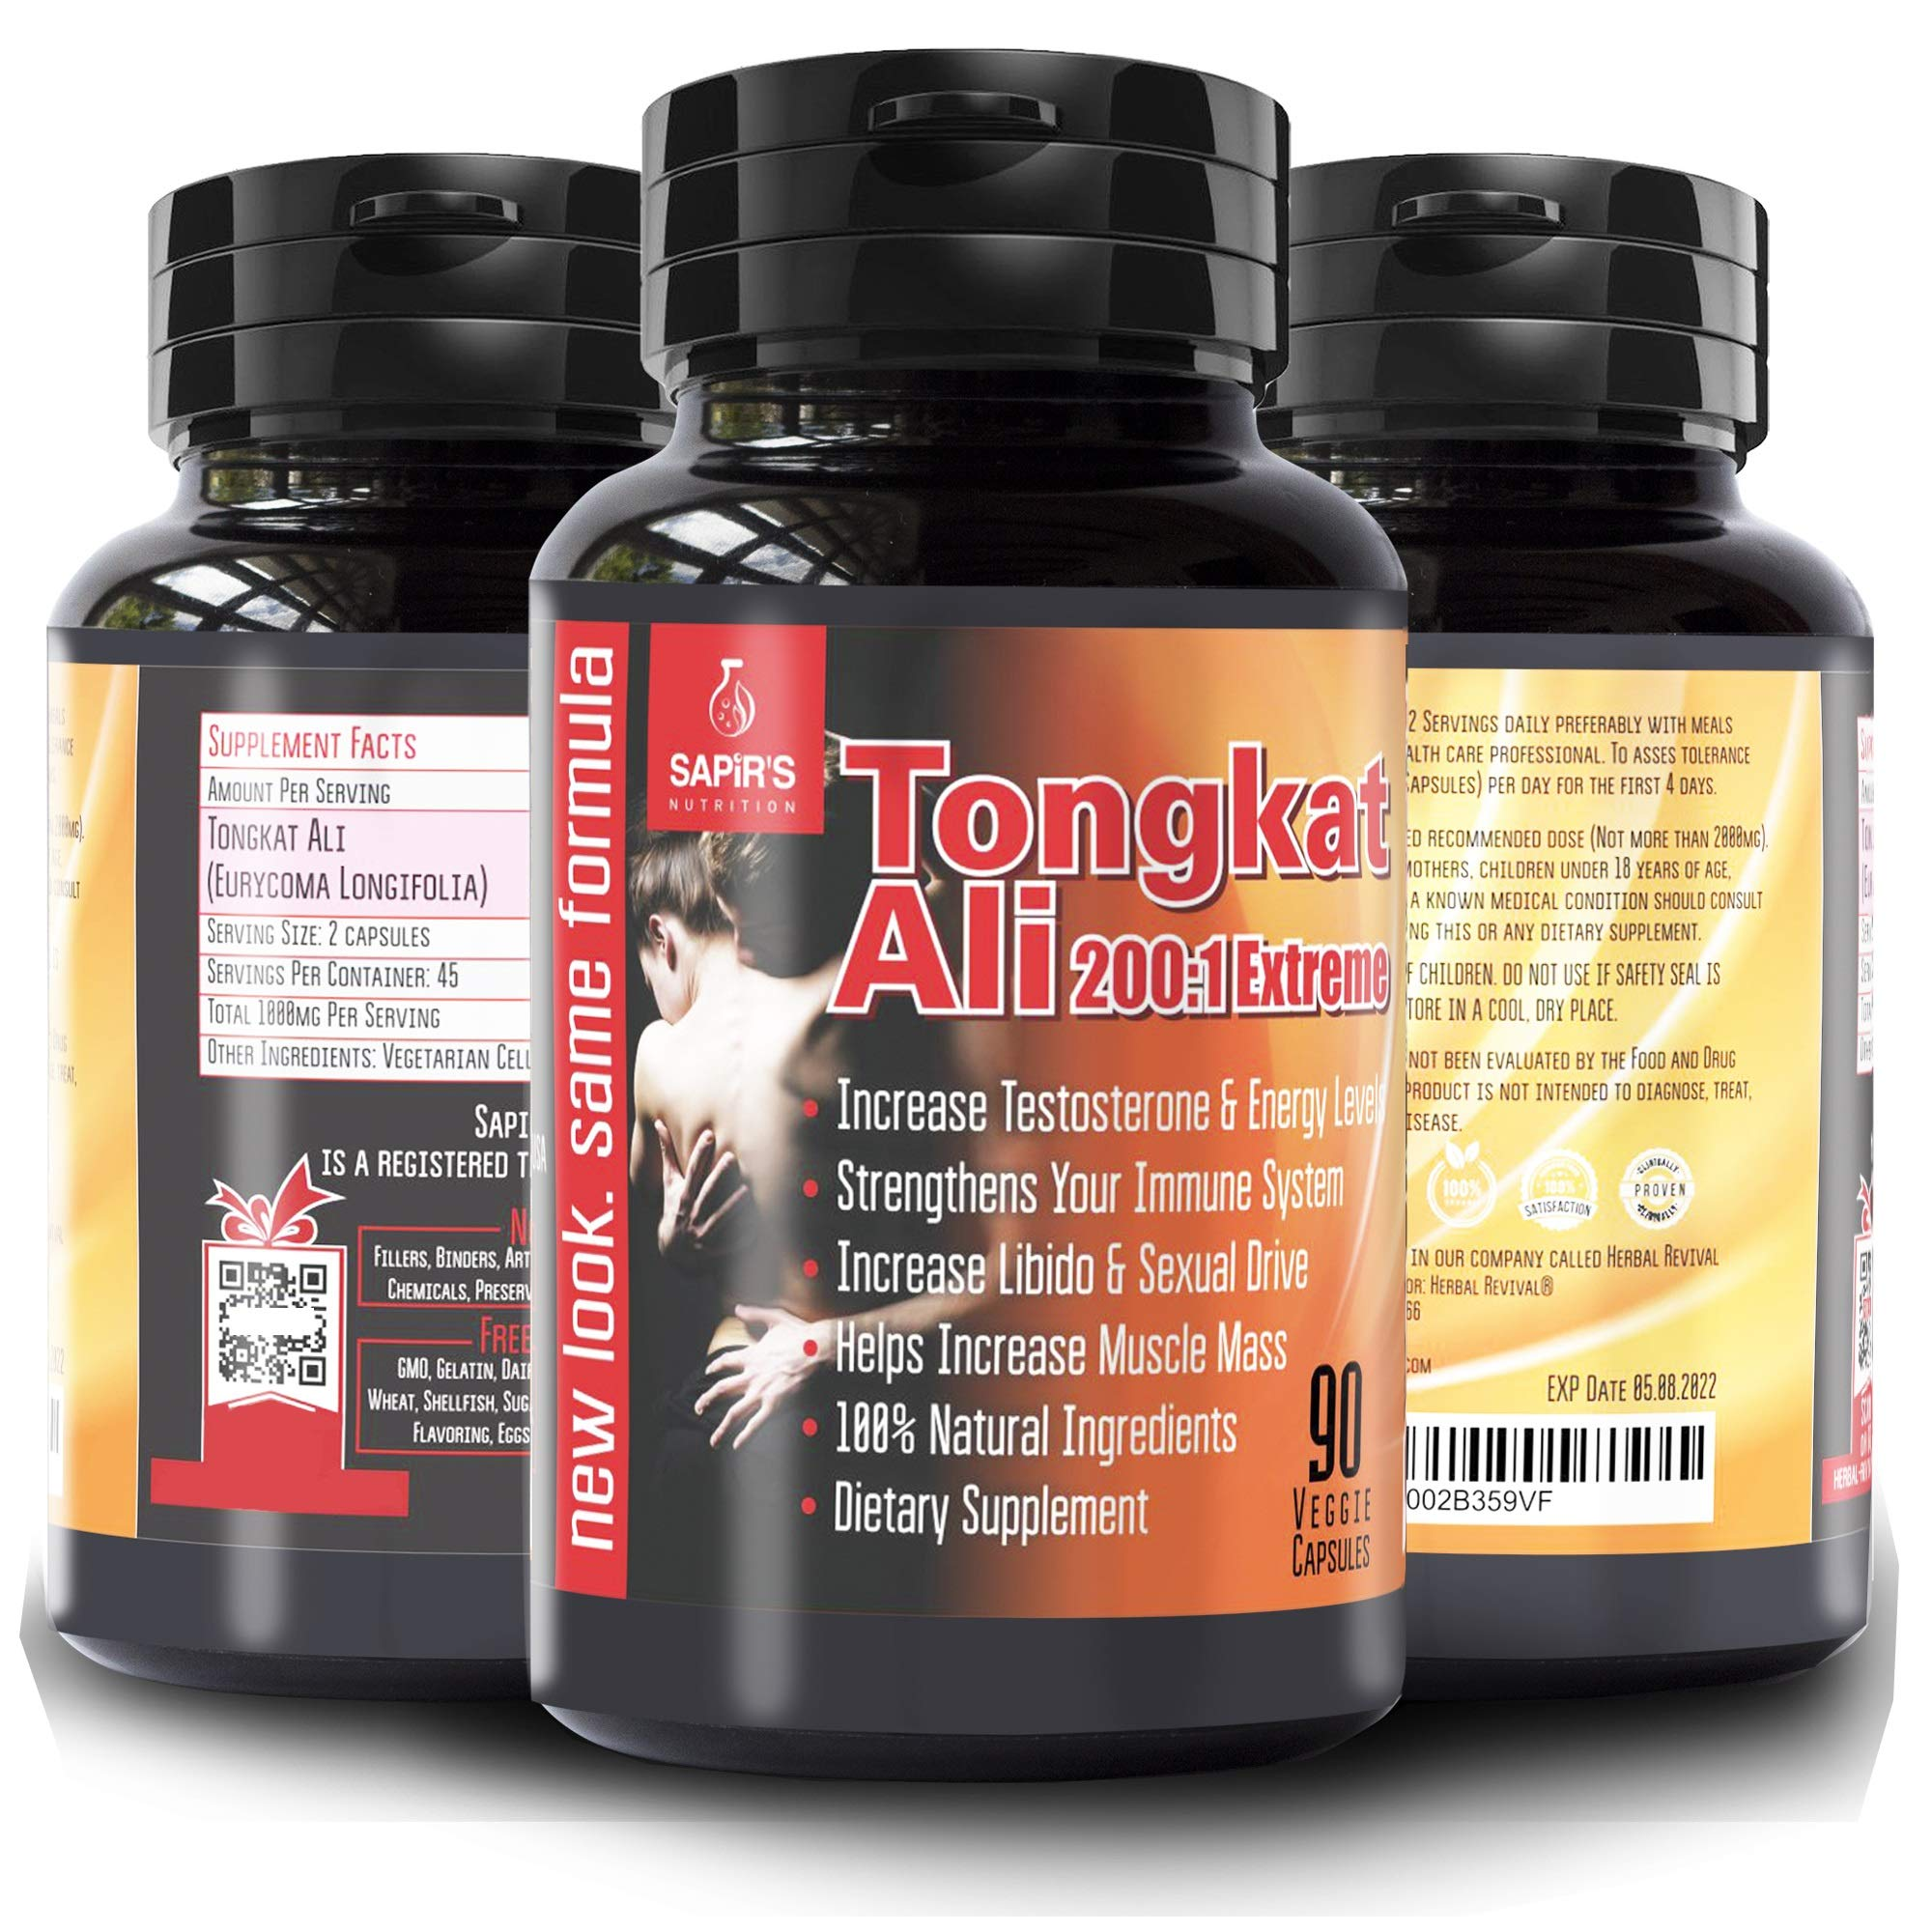 Tongkat Ali Long Jack Root Extract - Herbal Testosterone Supplements, Male Libido Booster, 90 Vegan Pills, Increase Male Stamina, Energy, Muscle Enlargement, Endurance Jack, Blood Flow Intimate Area